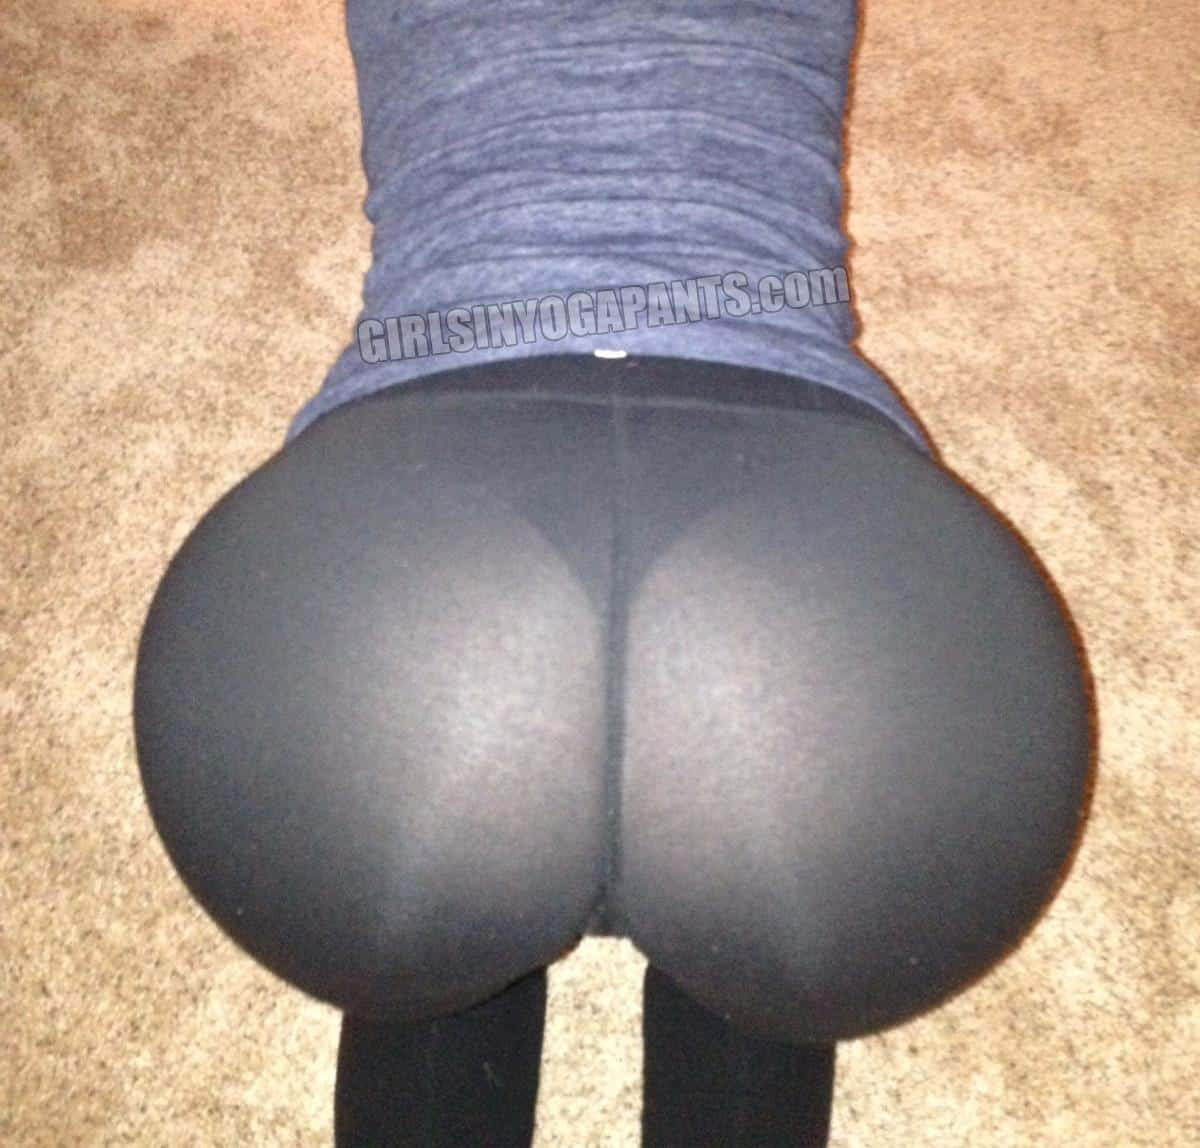 COUGAR BENT OVER IN SEE-THROUGH YOGA PANTS